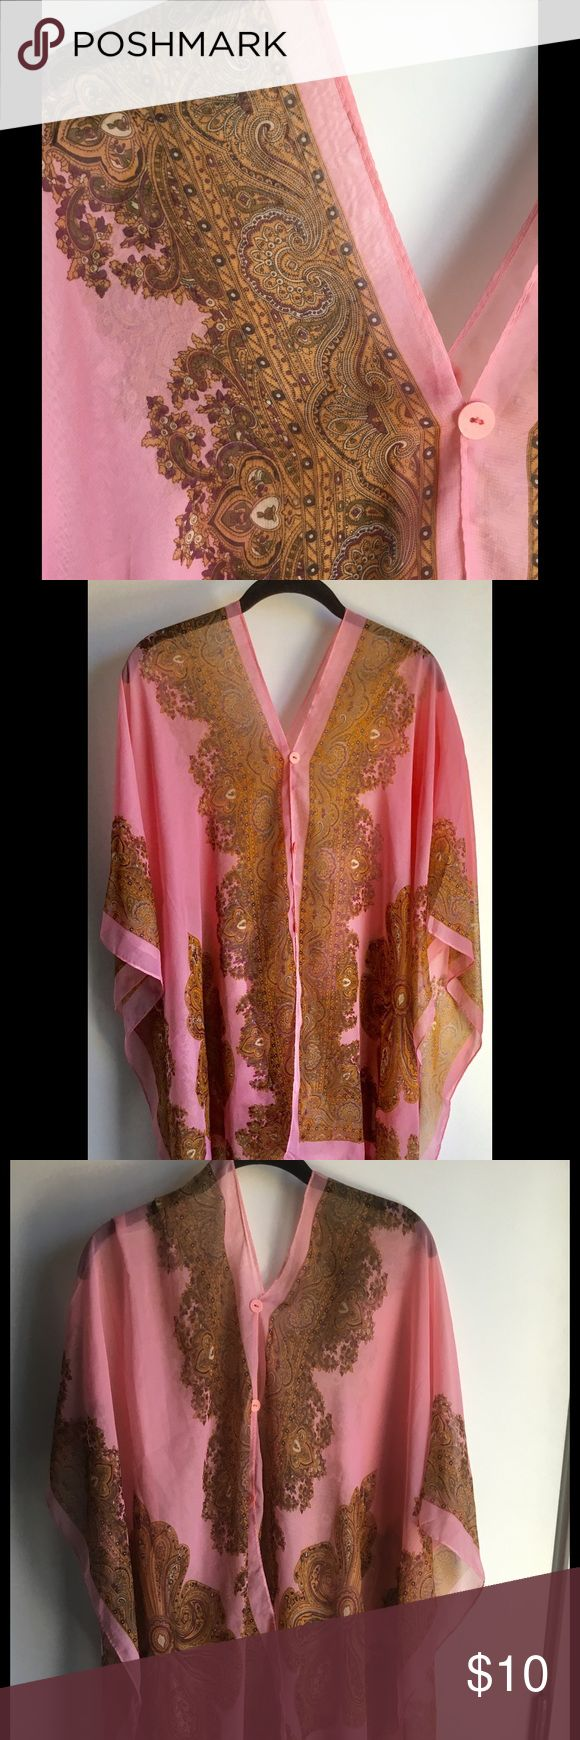 Pink and Gold Beach Cover Up / Tunic - OSFM Light, airy cover up or tunic. Pink with rich gold pattern and small buttons. One size fits most. Wear it over a bathing suit poolside. Throw on a pair of skinny jeans and heels and wear it to dinner. No tags. Purchased in Malaysia. Never worn. Reposh. Please submit reasonable offers via the 'Offer' function. NO negotiating in the comments section. NO trading or offline/alternate site transactions. All items from my closet, in a smoke-free…